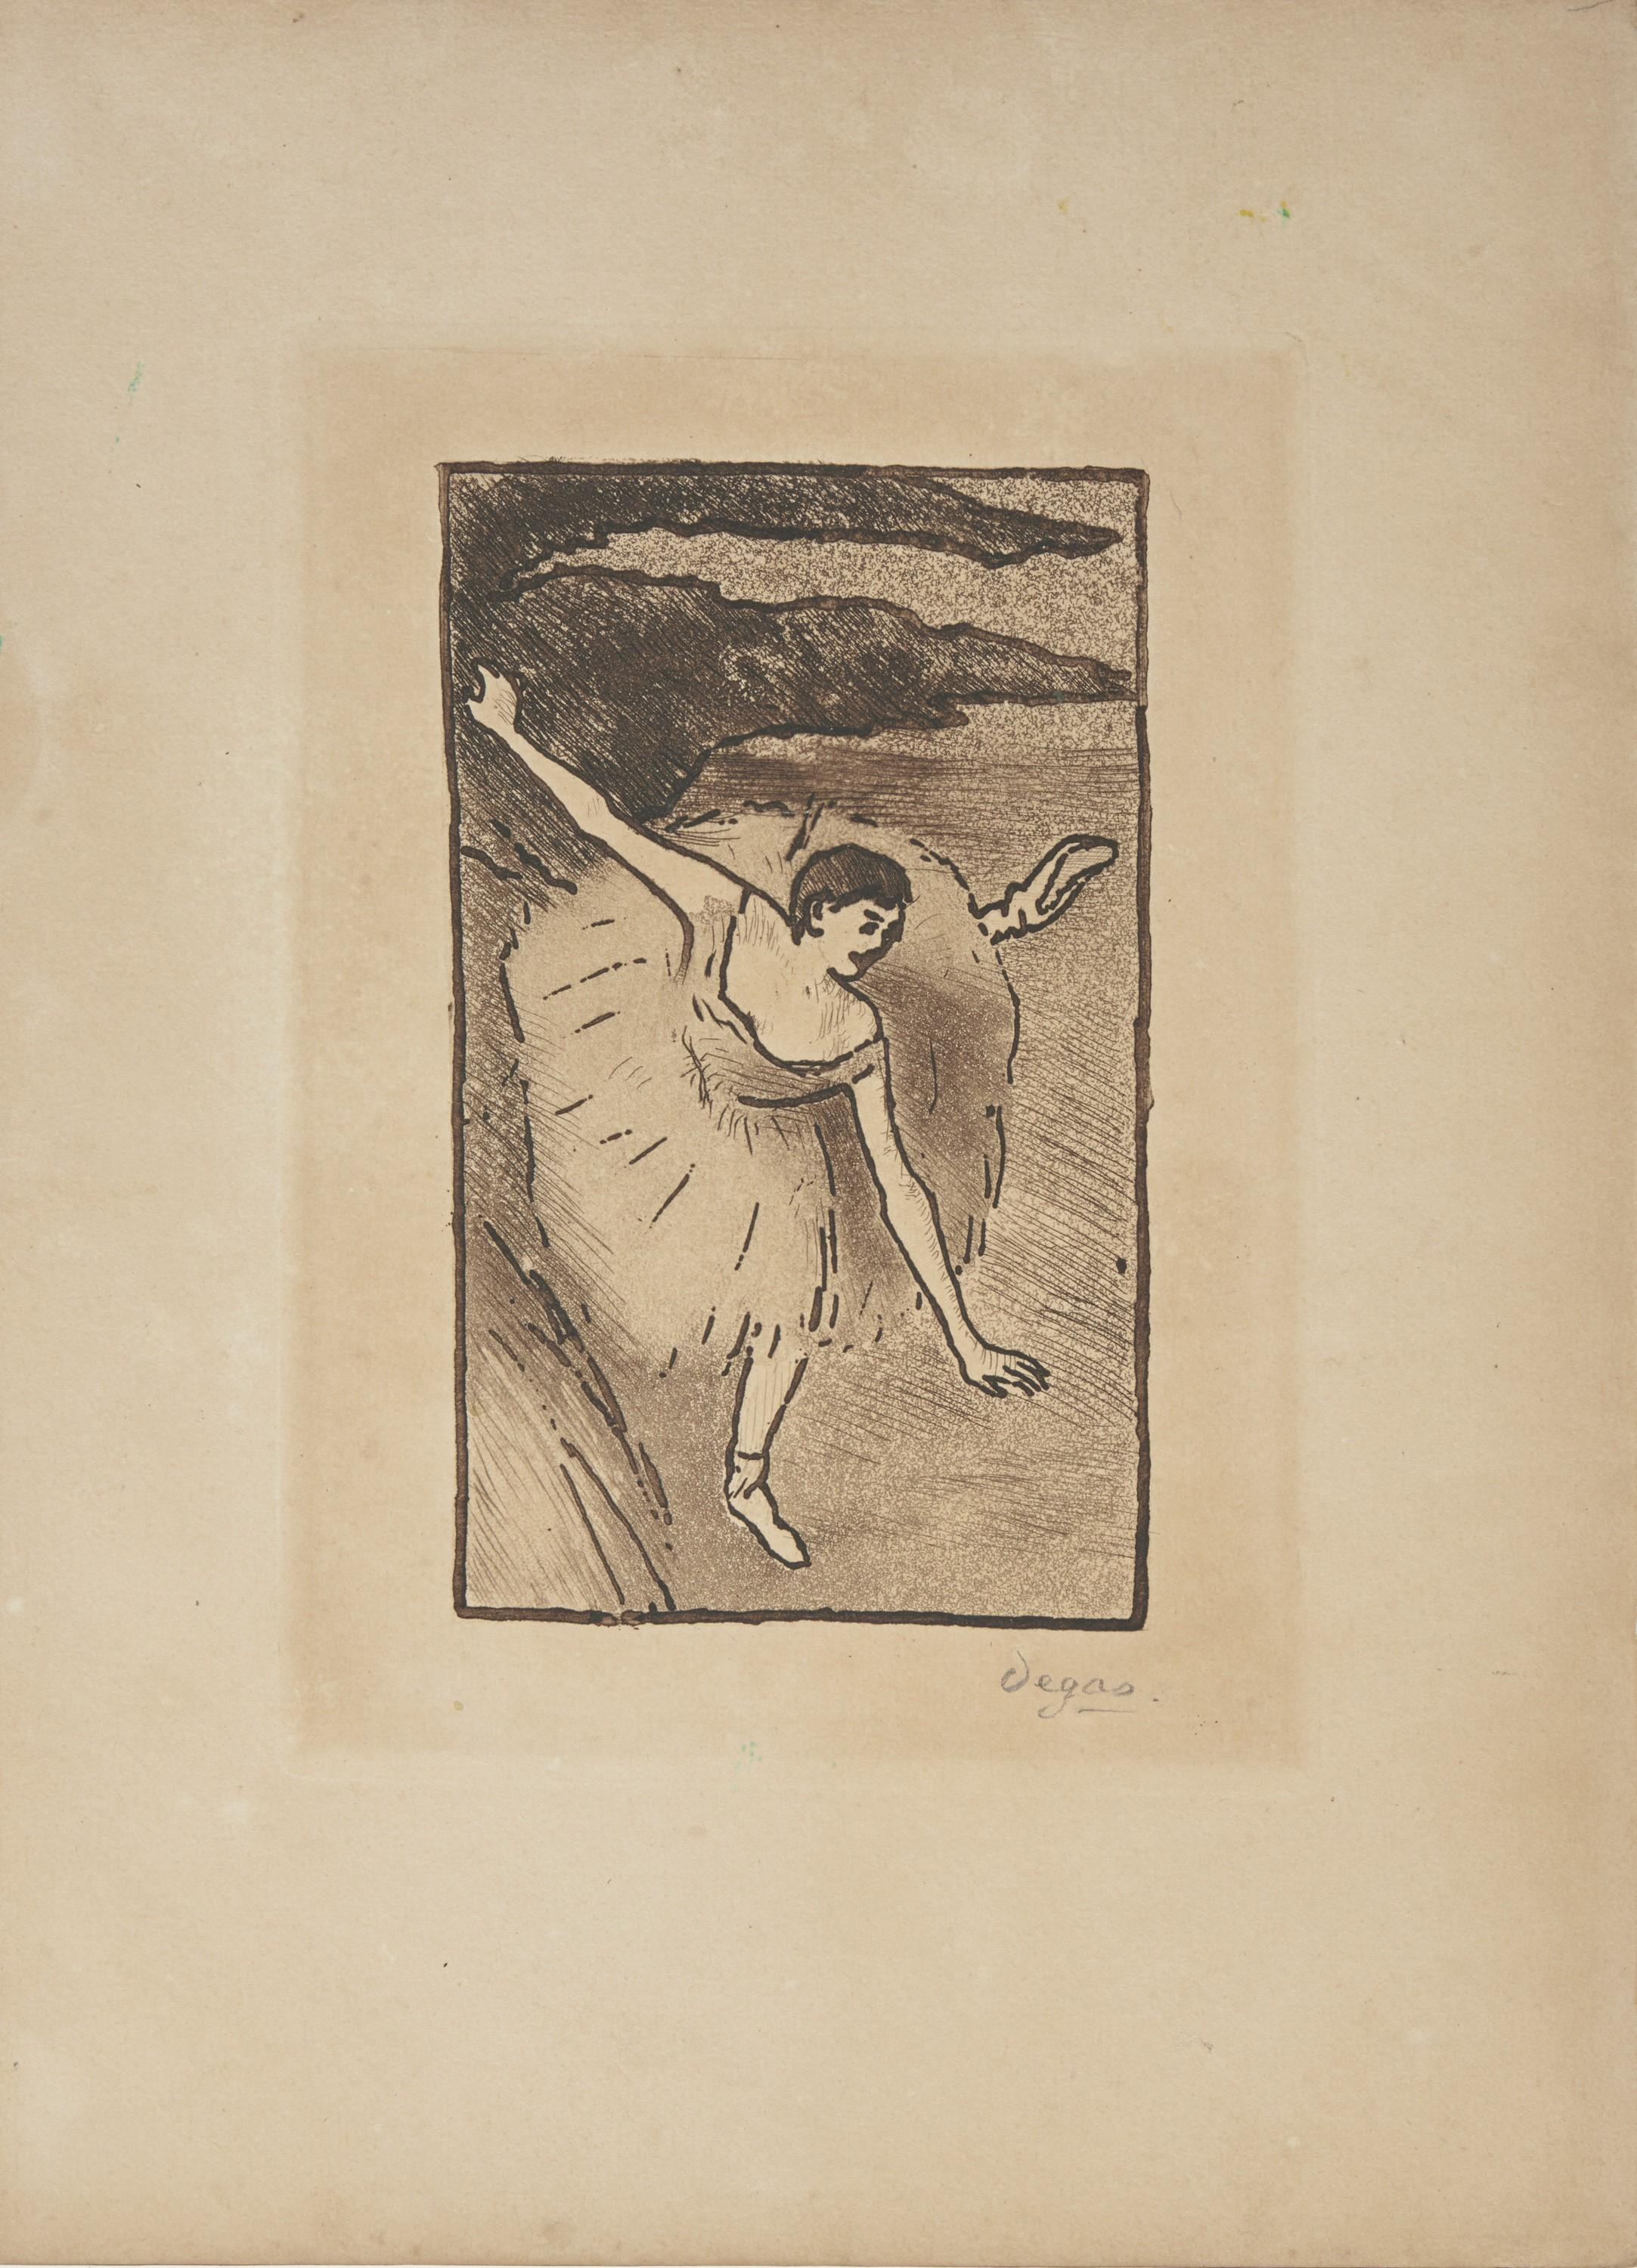 EDGAR DEGAS, (French, 1834-1917), Danseur sur scene, salutant (Dancer on Stage, Taking Her Bow), aquatint and etching, plate: 6 1/2 x 4 1/2 in., image: 5 1/4 x 3 in., sheet: 10 1/4 x 7 1/4 in.